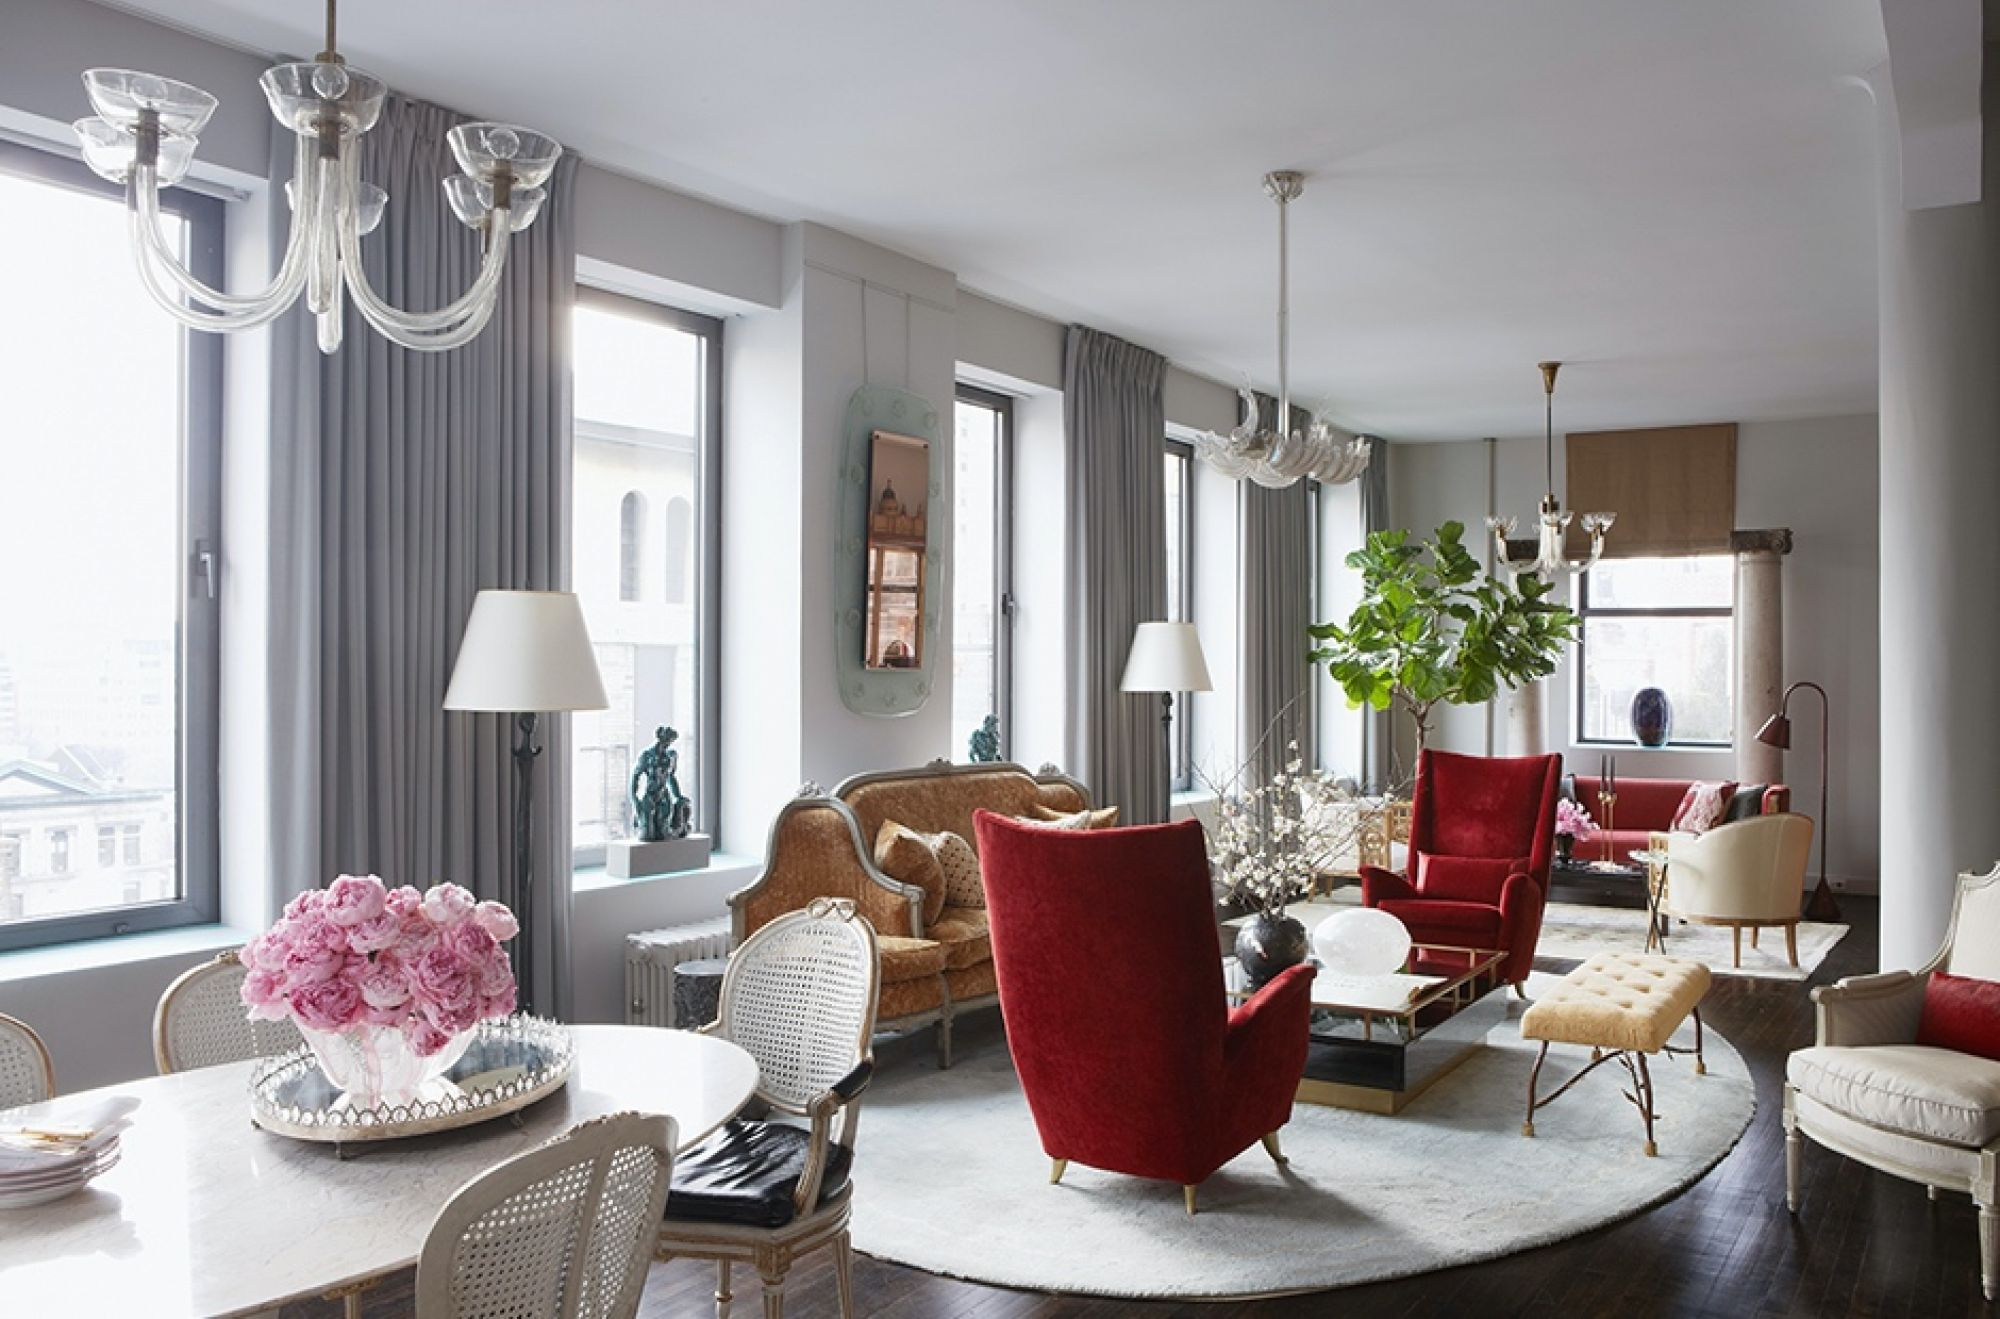 A personality-laden pair of red chairs is transformational in the midst of the more sedate and traditional trappings in this home by D'AquinoMonaco. Photo: D'AquinoMonaco